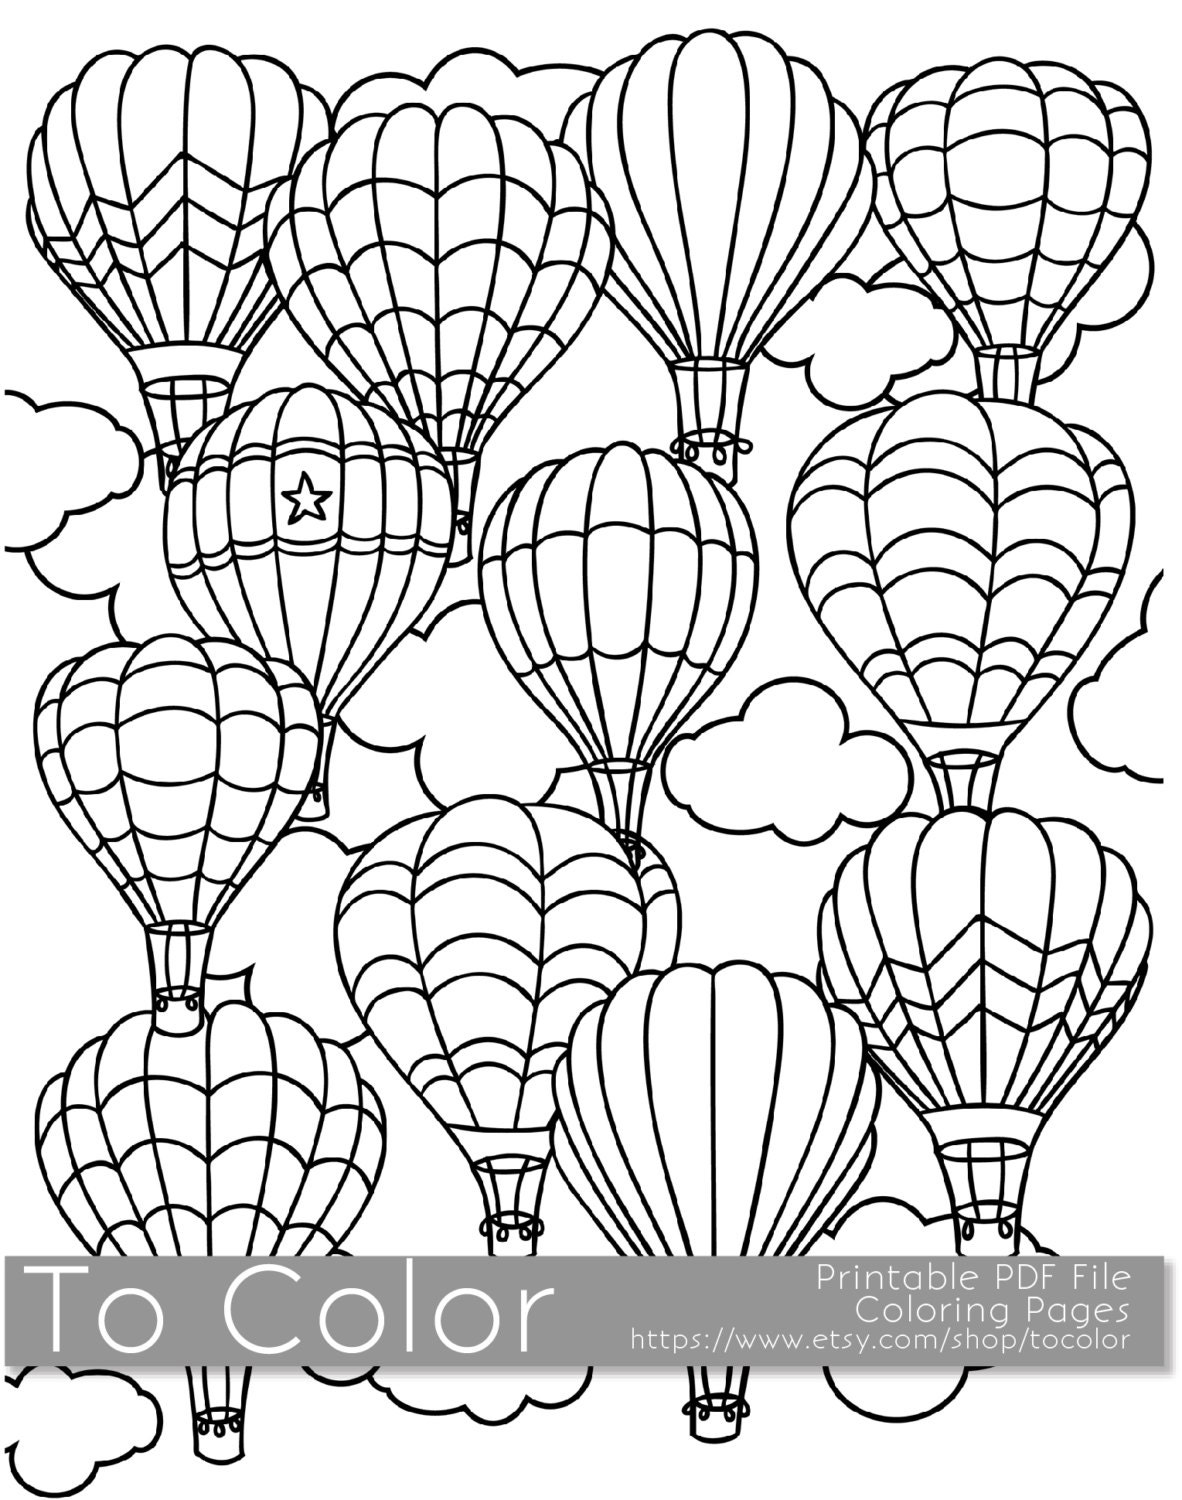 hot air balloon coloring pages - printable hot air balloon coloring page for adults pdf jpg